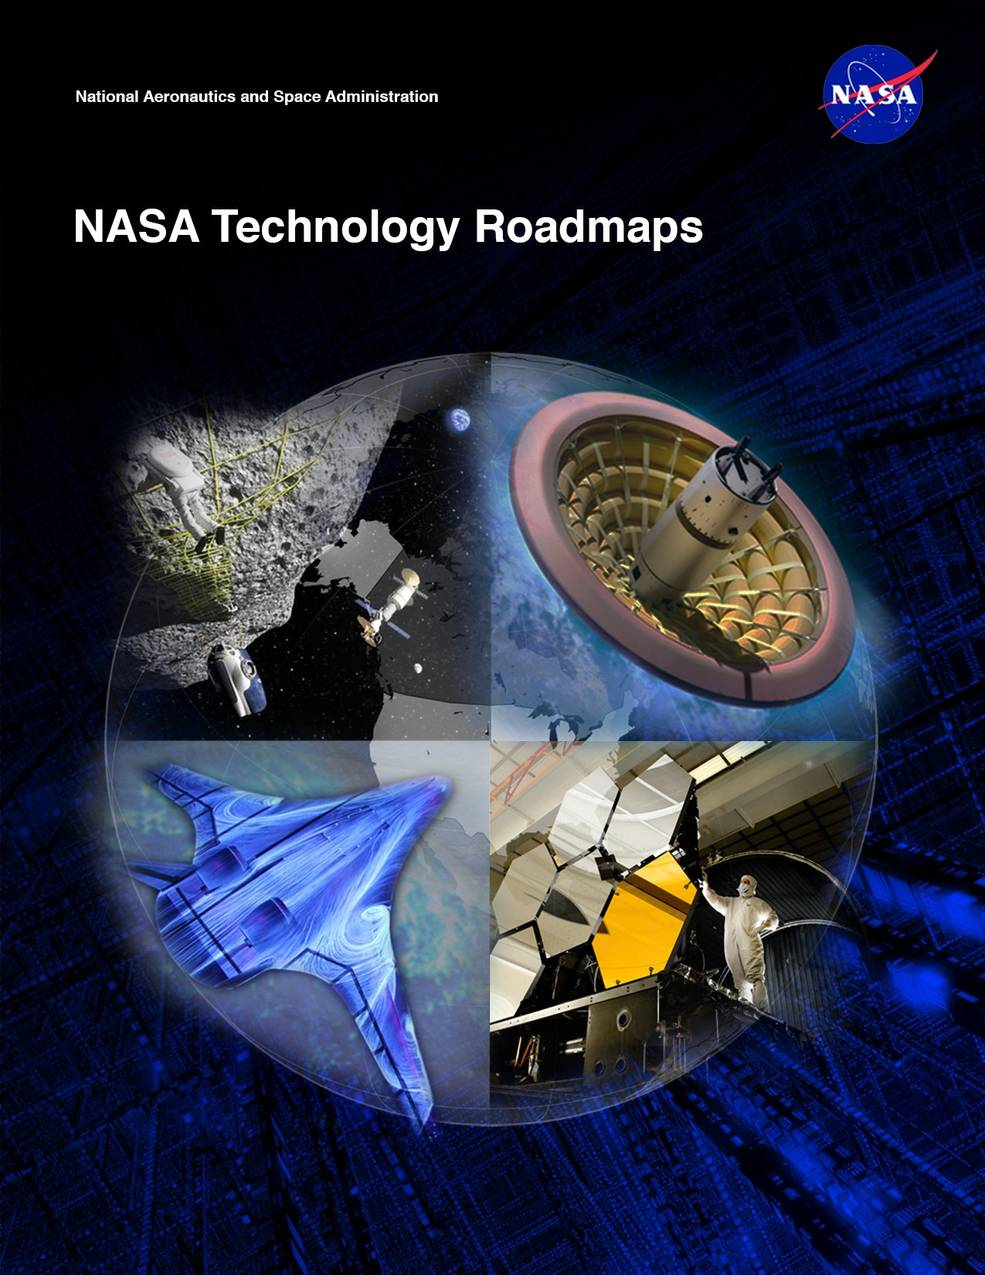 nasa unveils latest technology roadmaps for future agency. Black Bedroom Furniture Sets. Home Design Ideas